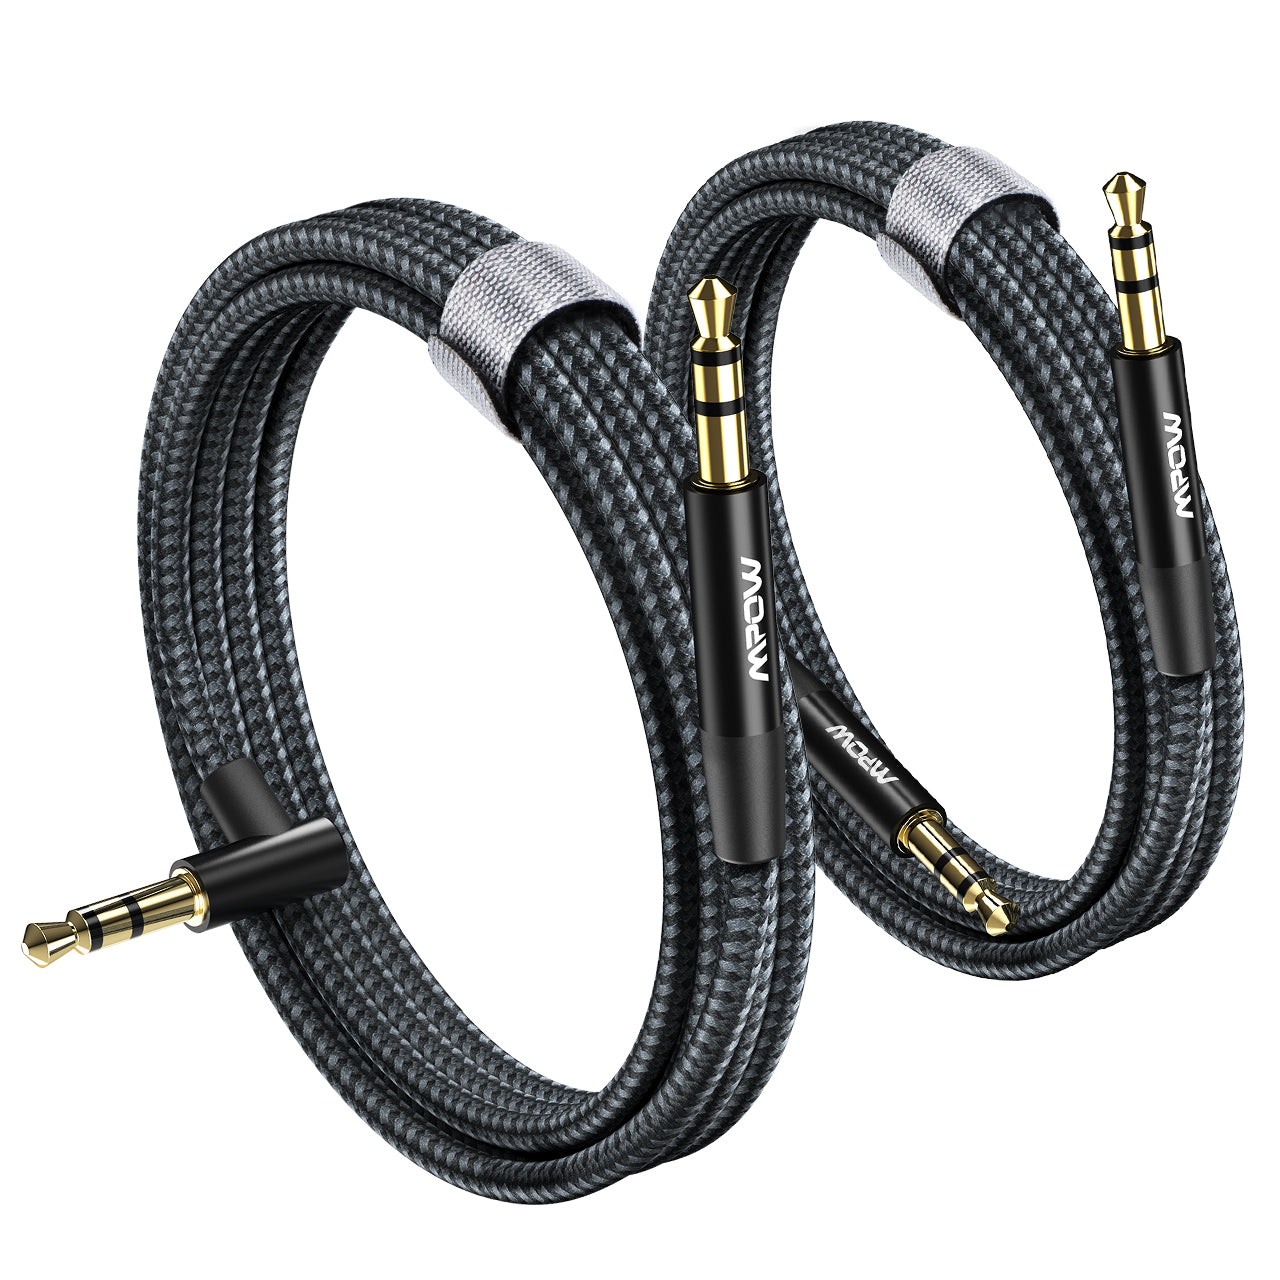 MPOW BH449A 3.5mm Male to Male Stereo Audio Aux Cable, 2-Pack